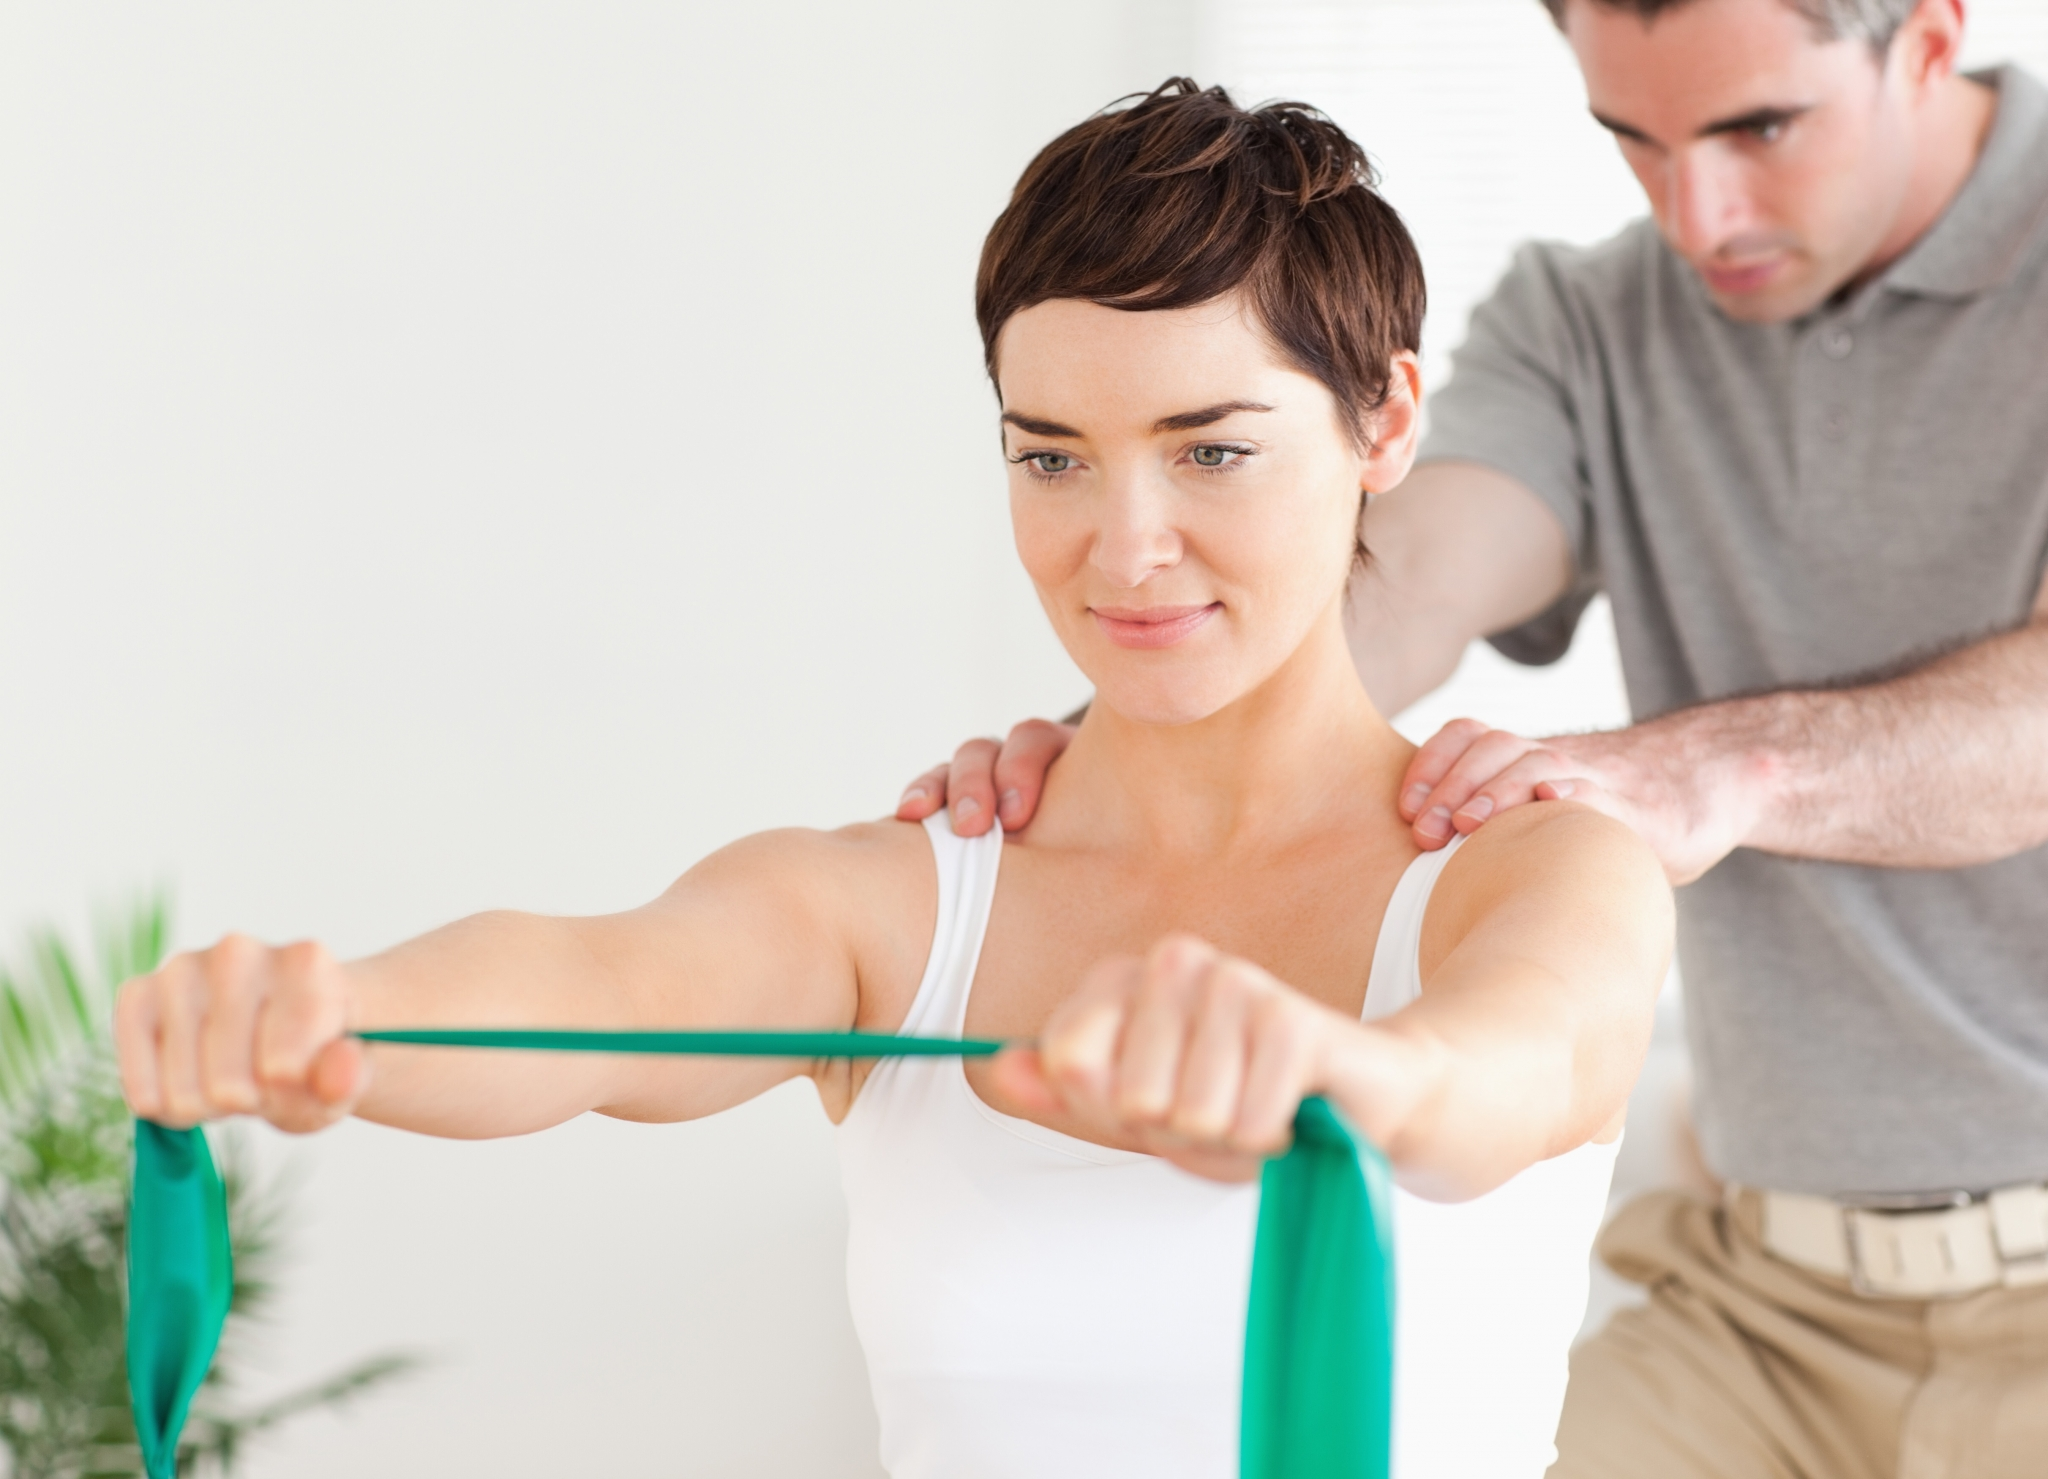 Woman using exercise bands